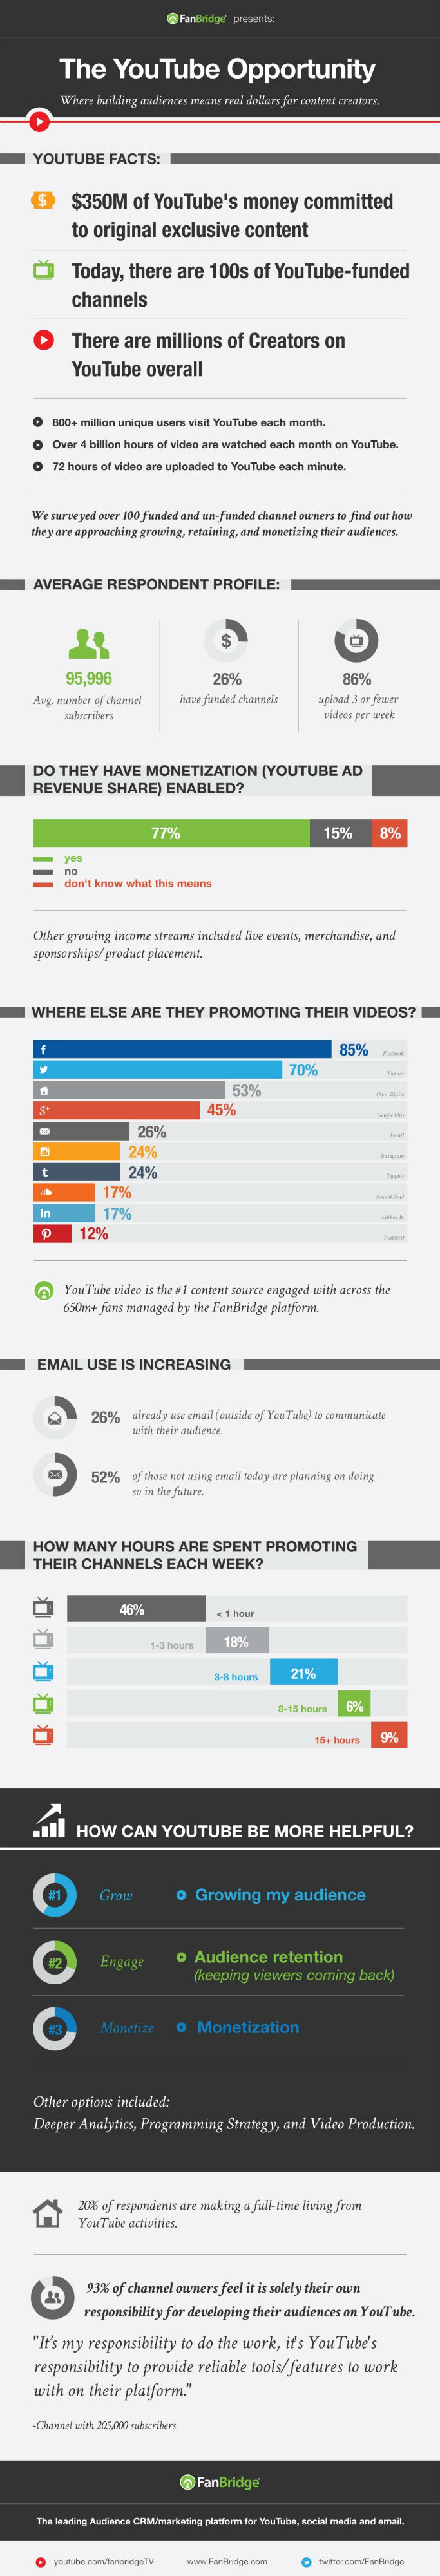 Infographic - Building YouTube Audiences